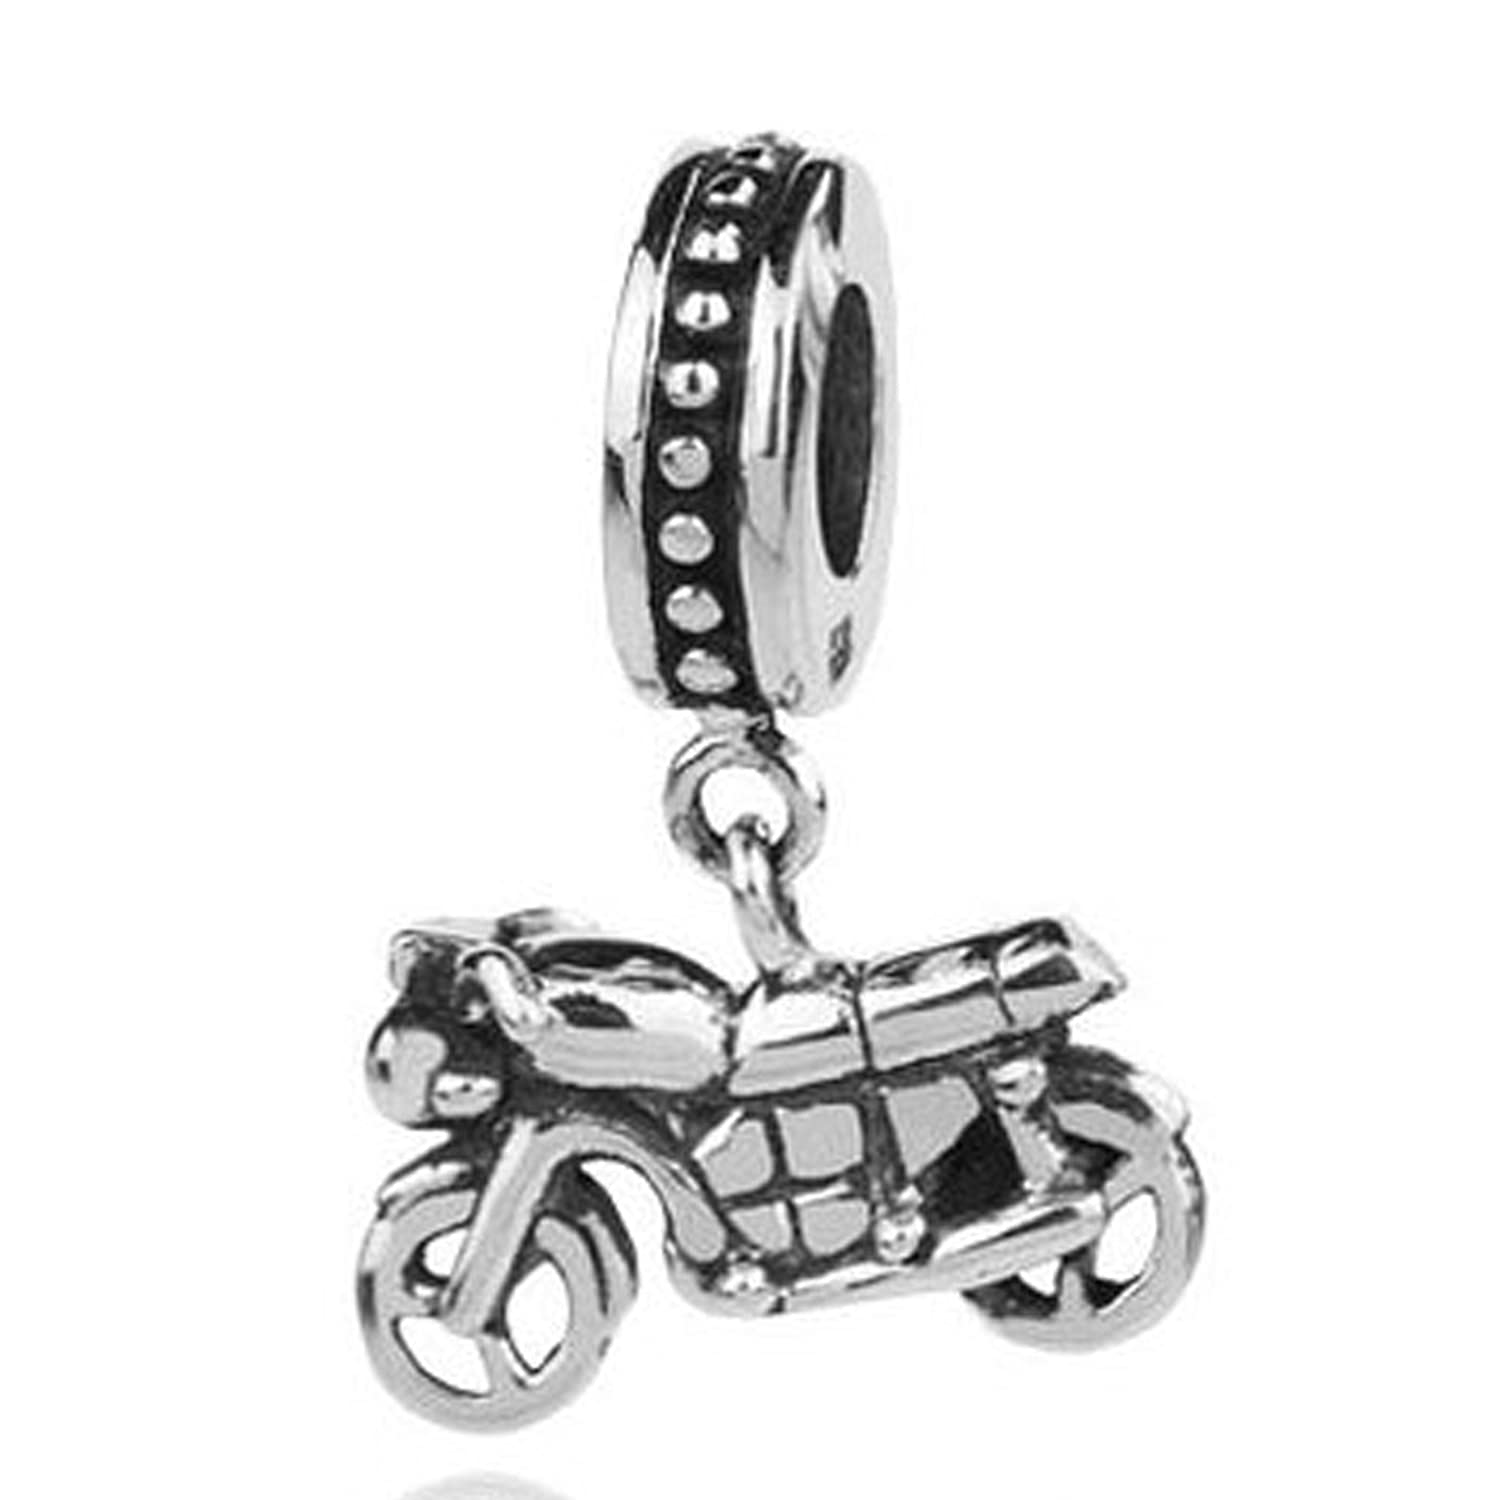 pandora charm canada winnipeg jewellery bracelet bracelets may leather jdownloads macys index march best online sale images uk bra